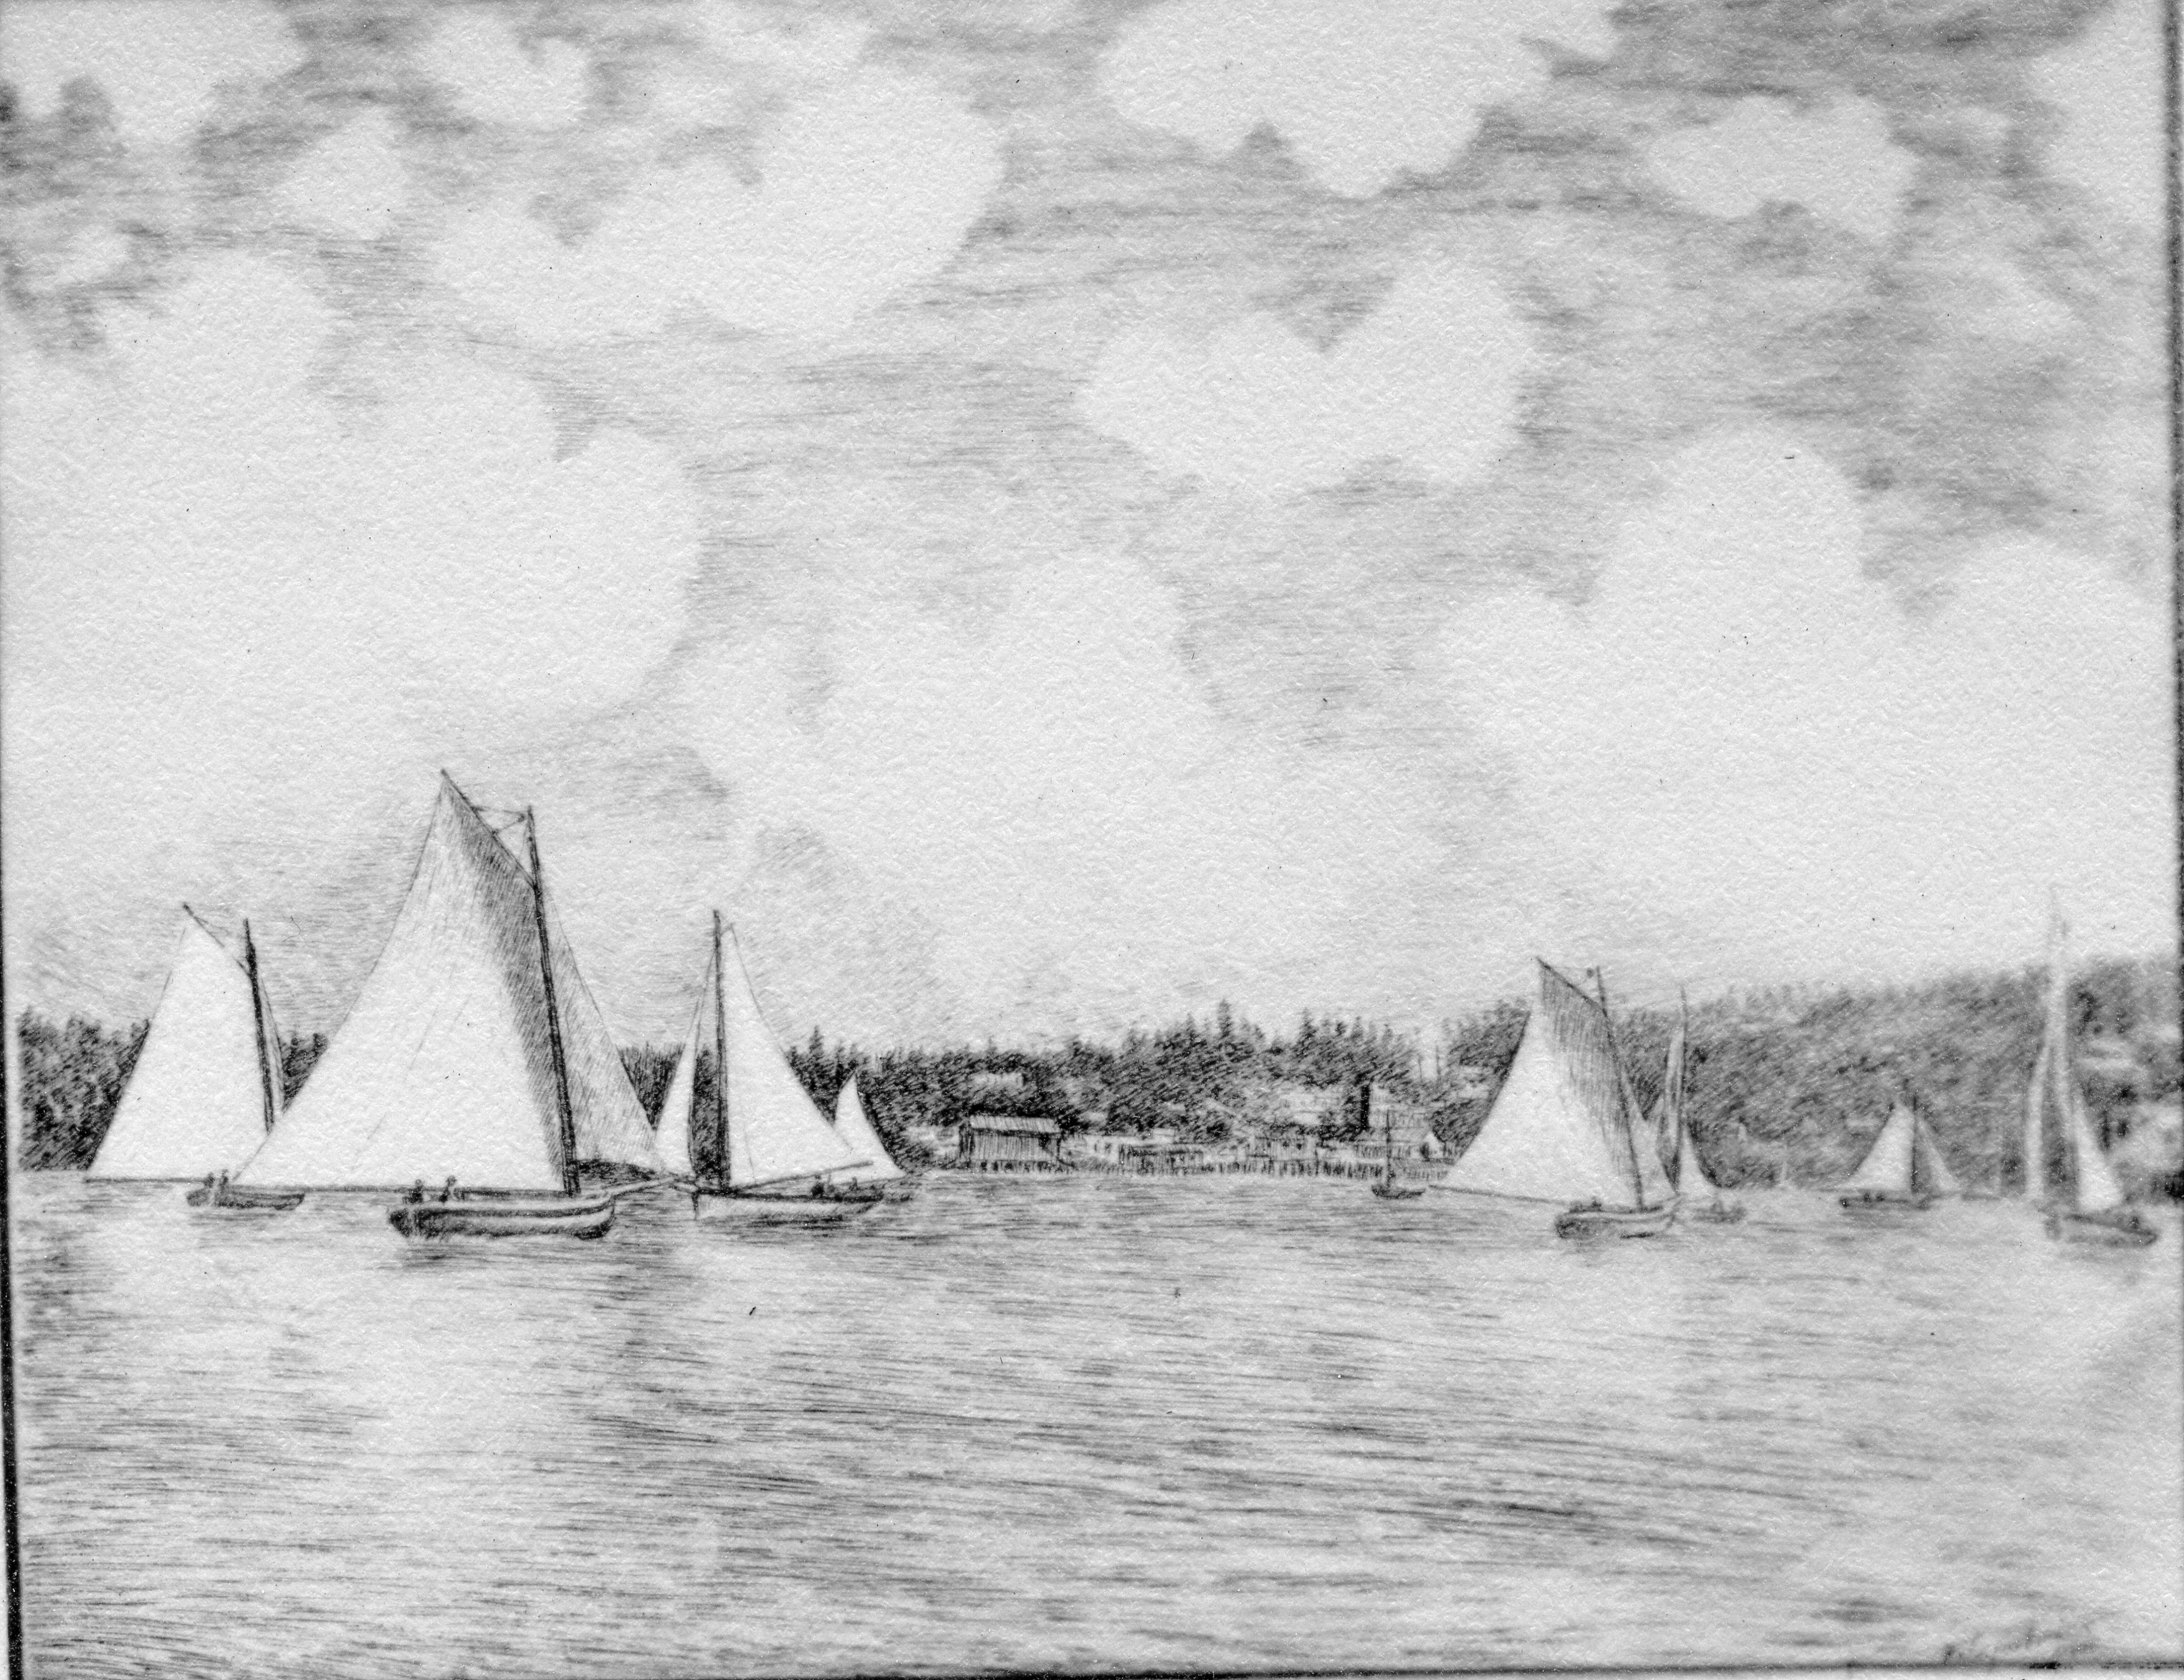 Annual Regatta, c. 1880s